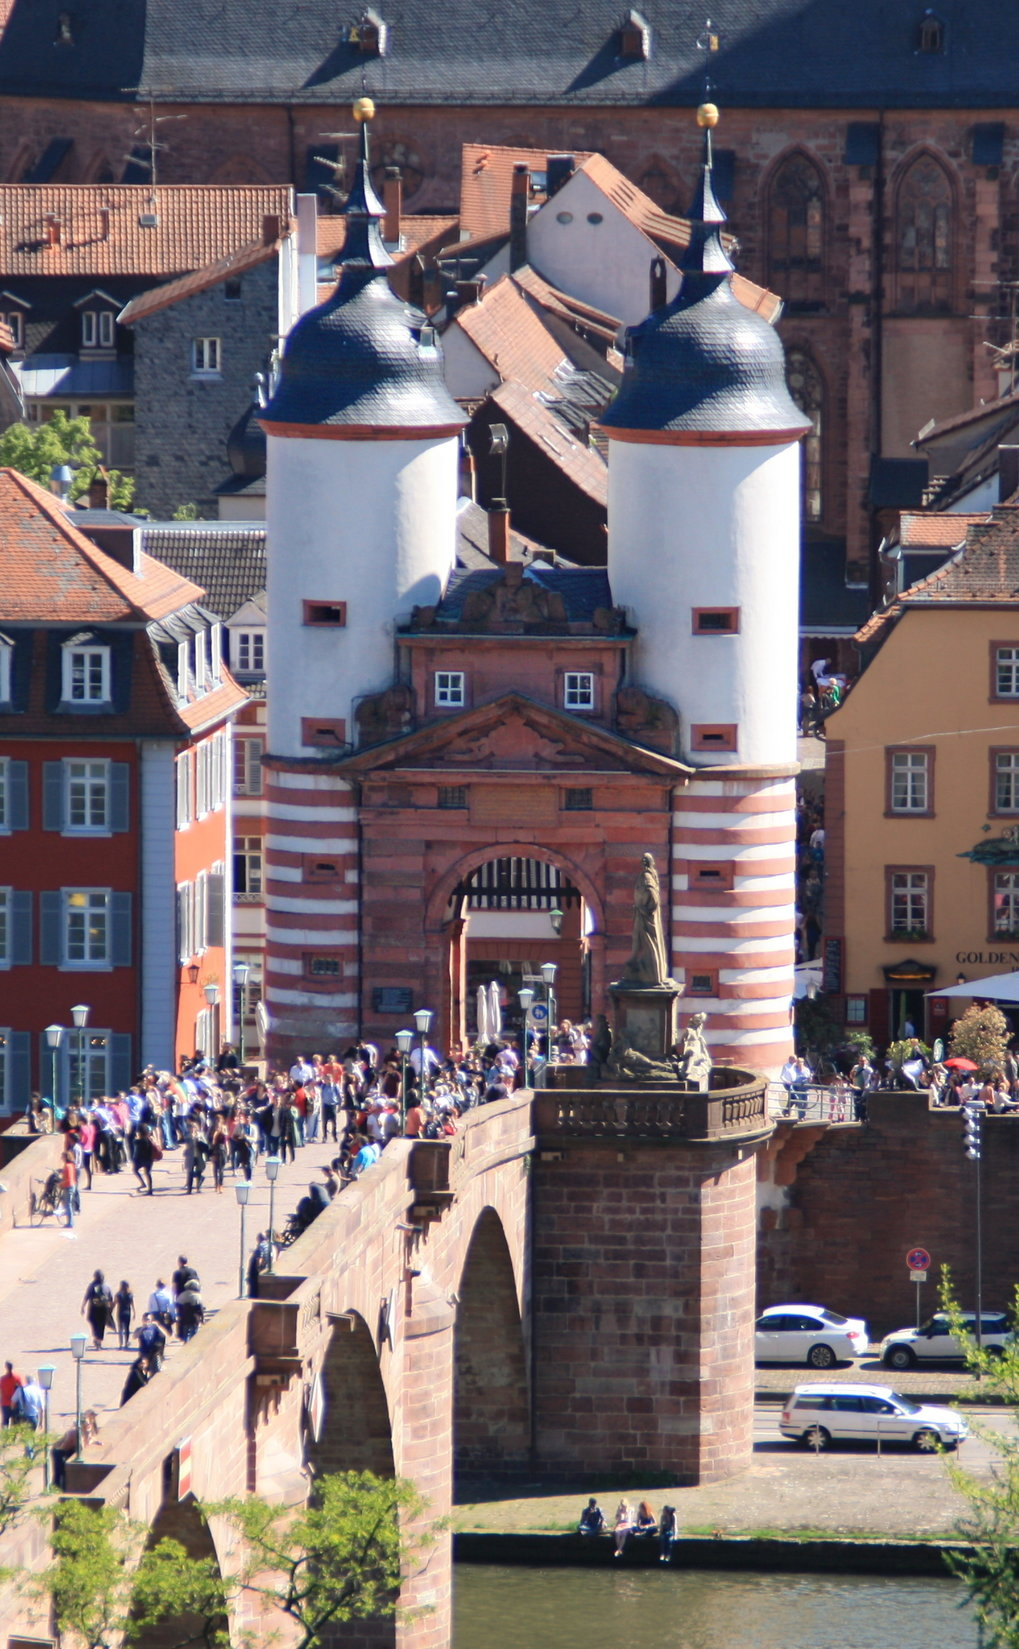 Heidelberg is one of the most popular cities in Germany. Here, we have some assembled some information for you - practical as well as general - about living here.